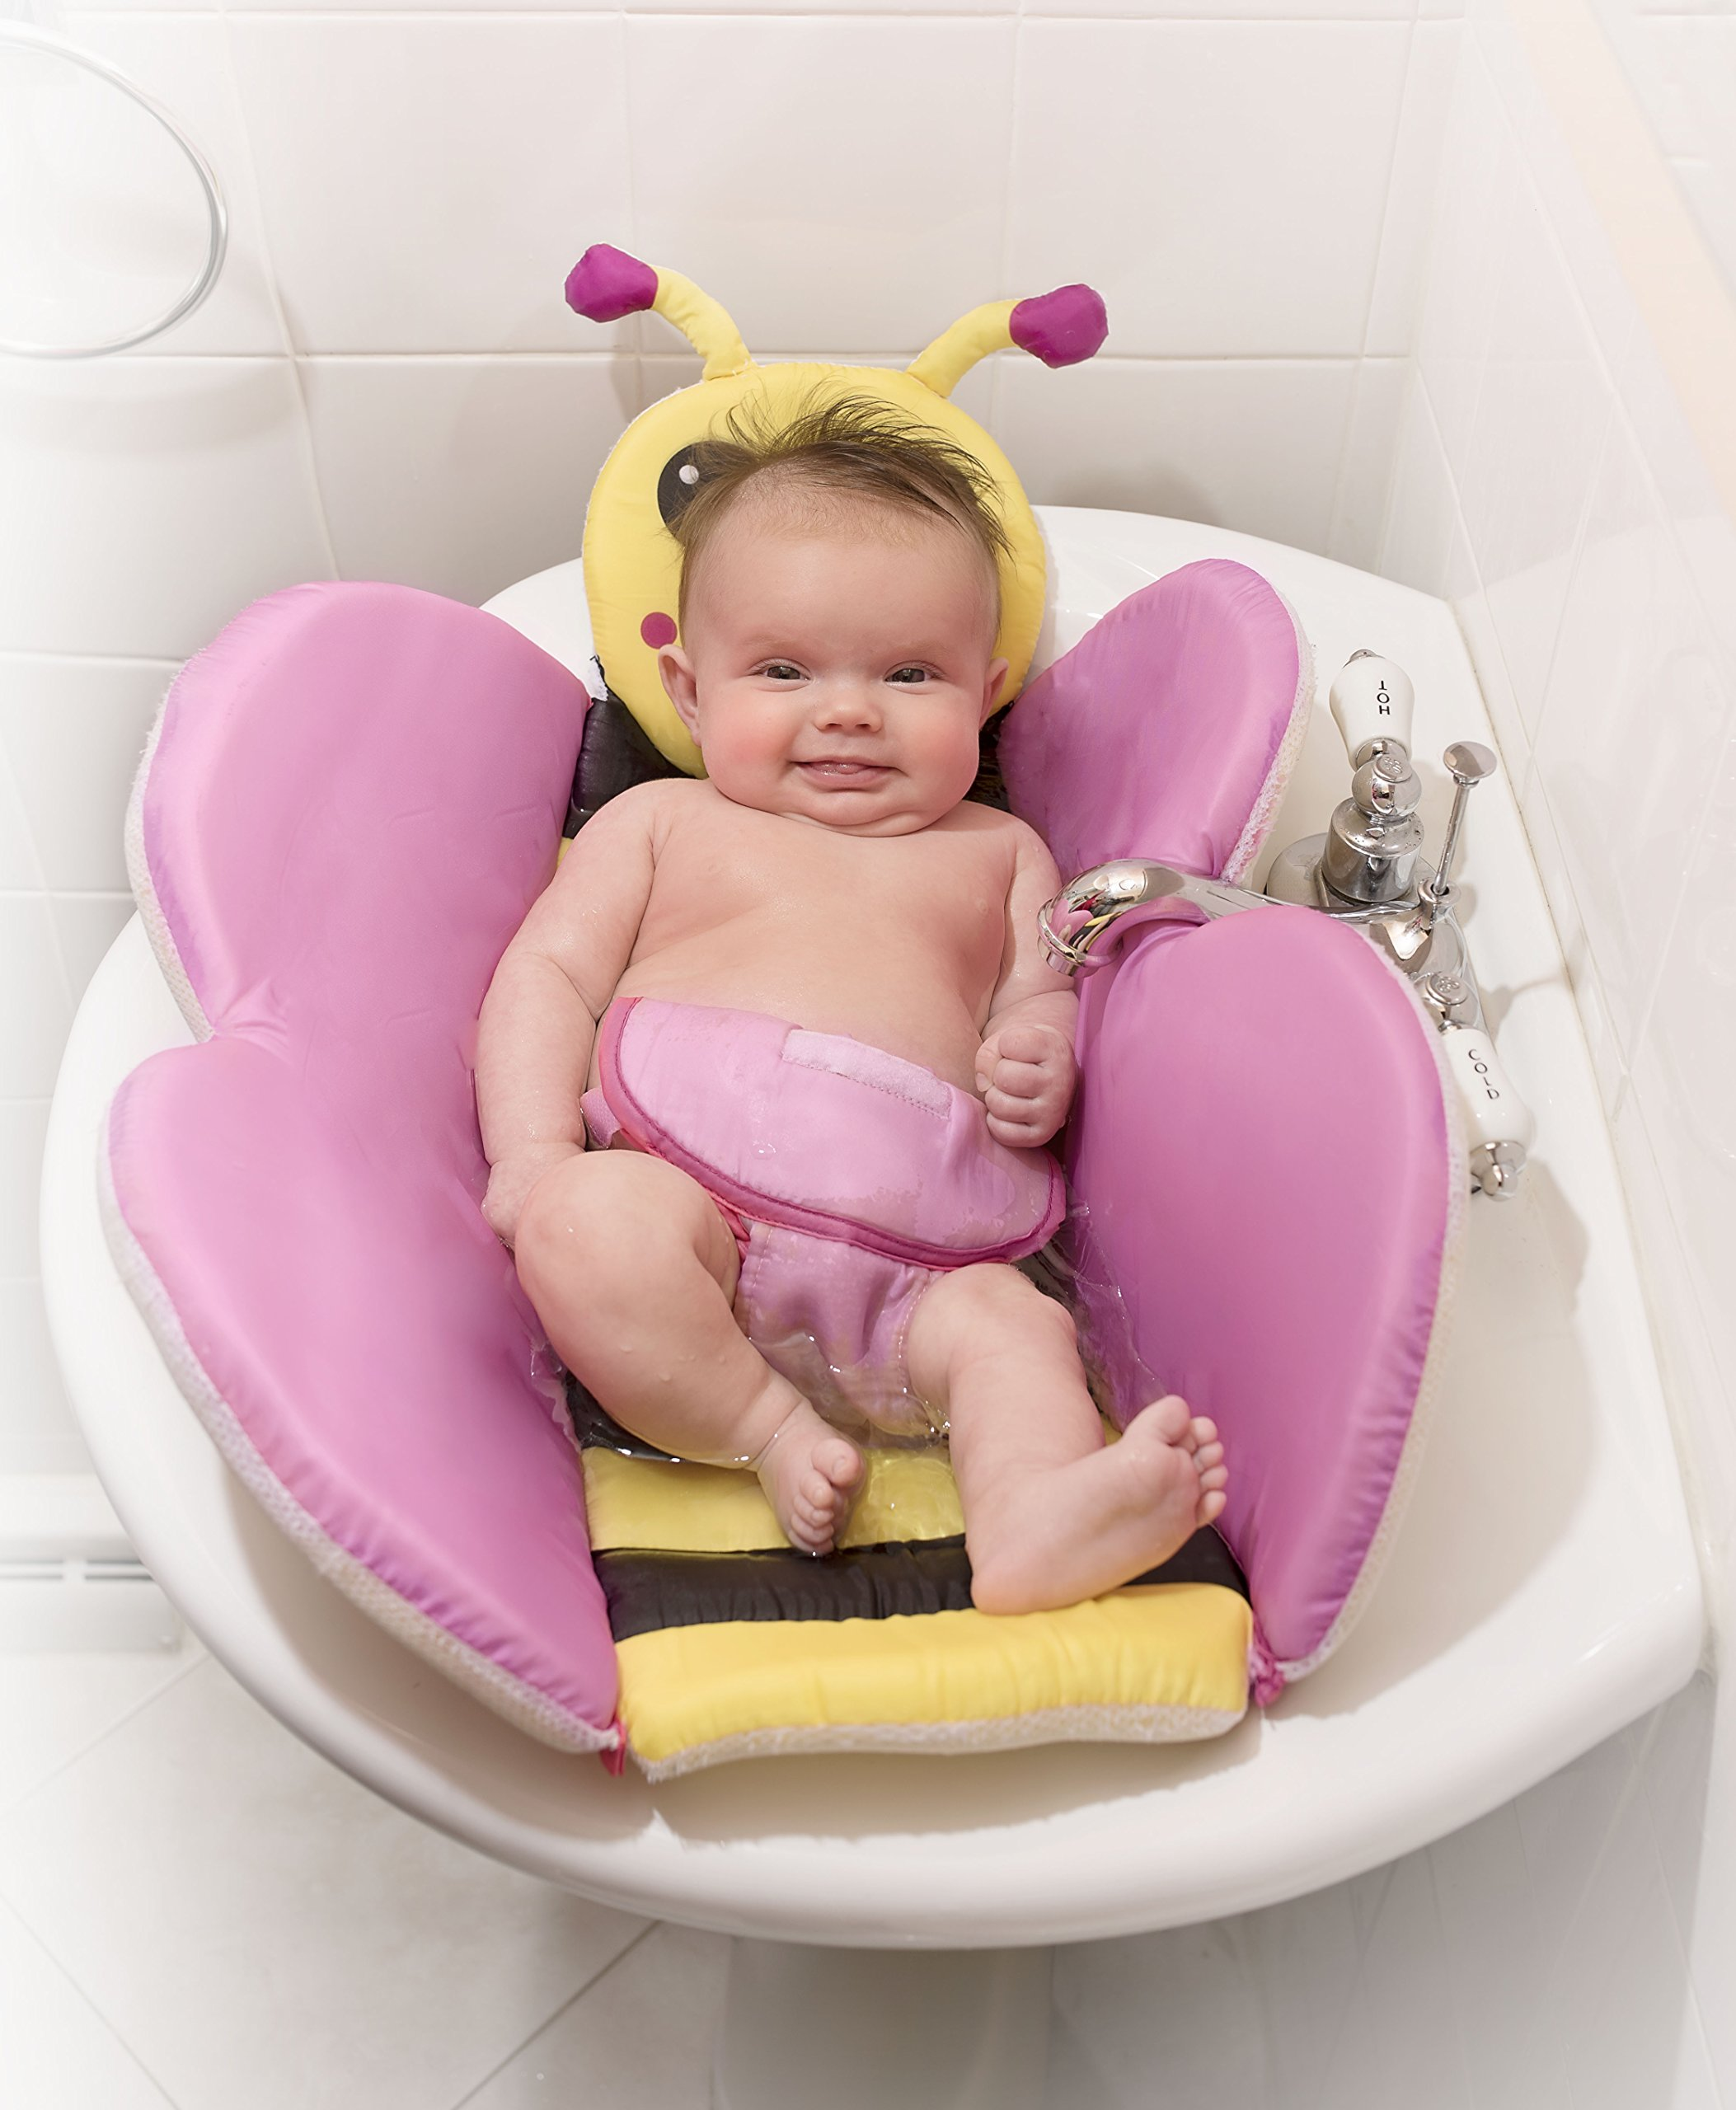 Cheap Baby Sink Bath Tub, find Baby Sink Bath Tub deals on line at ...